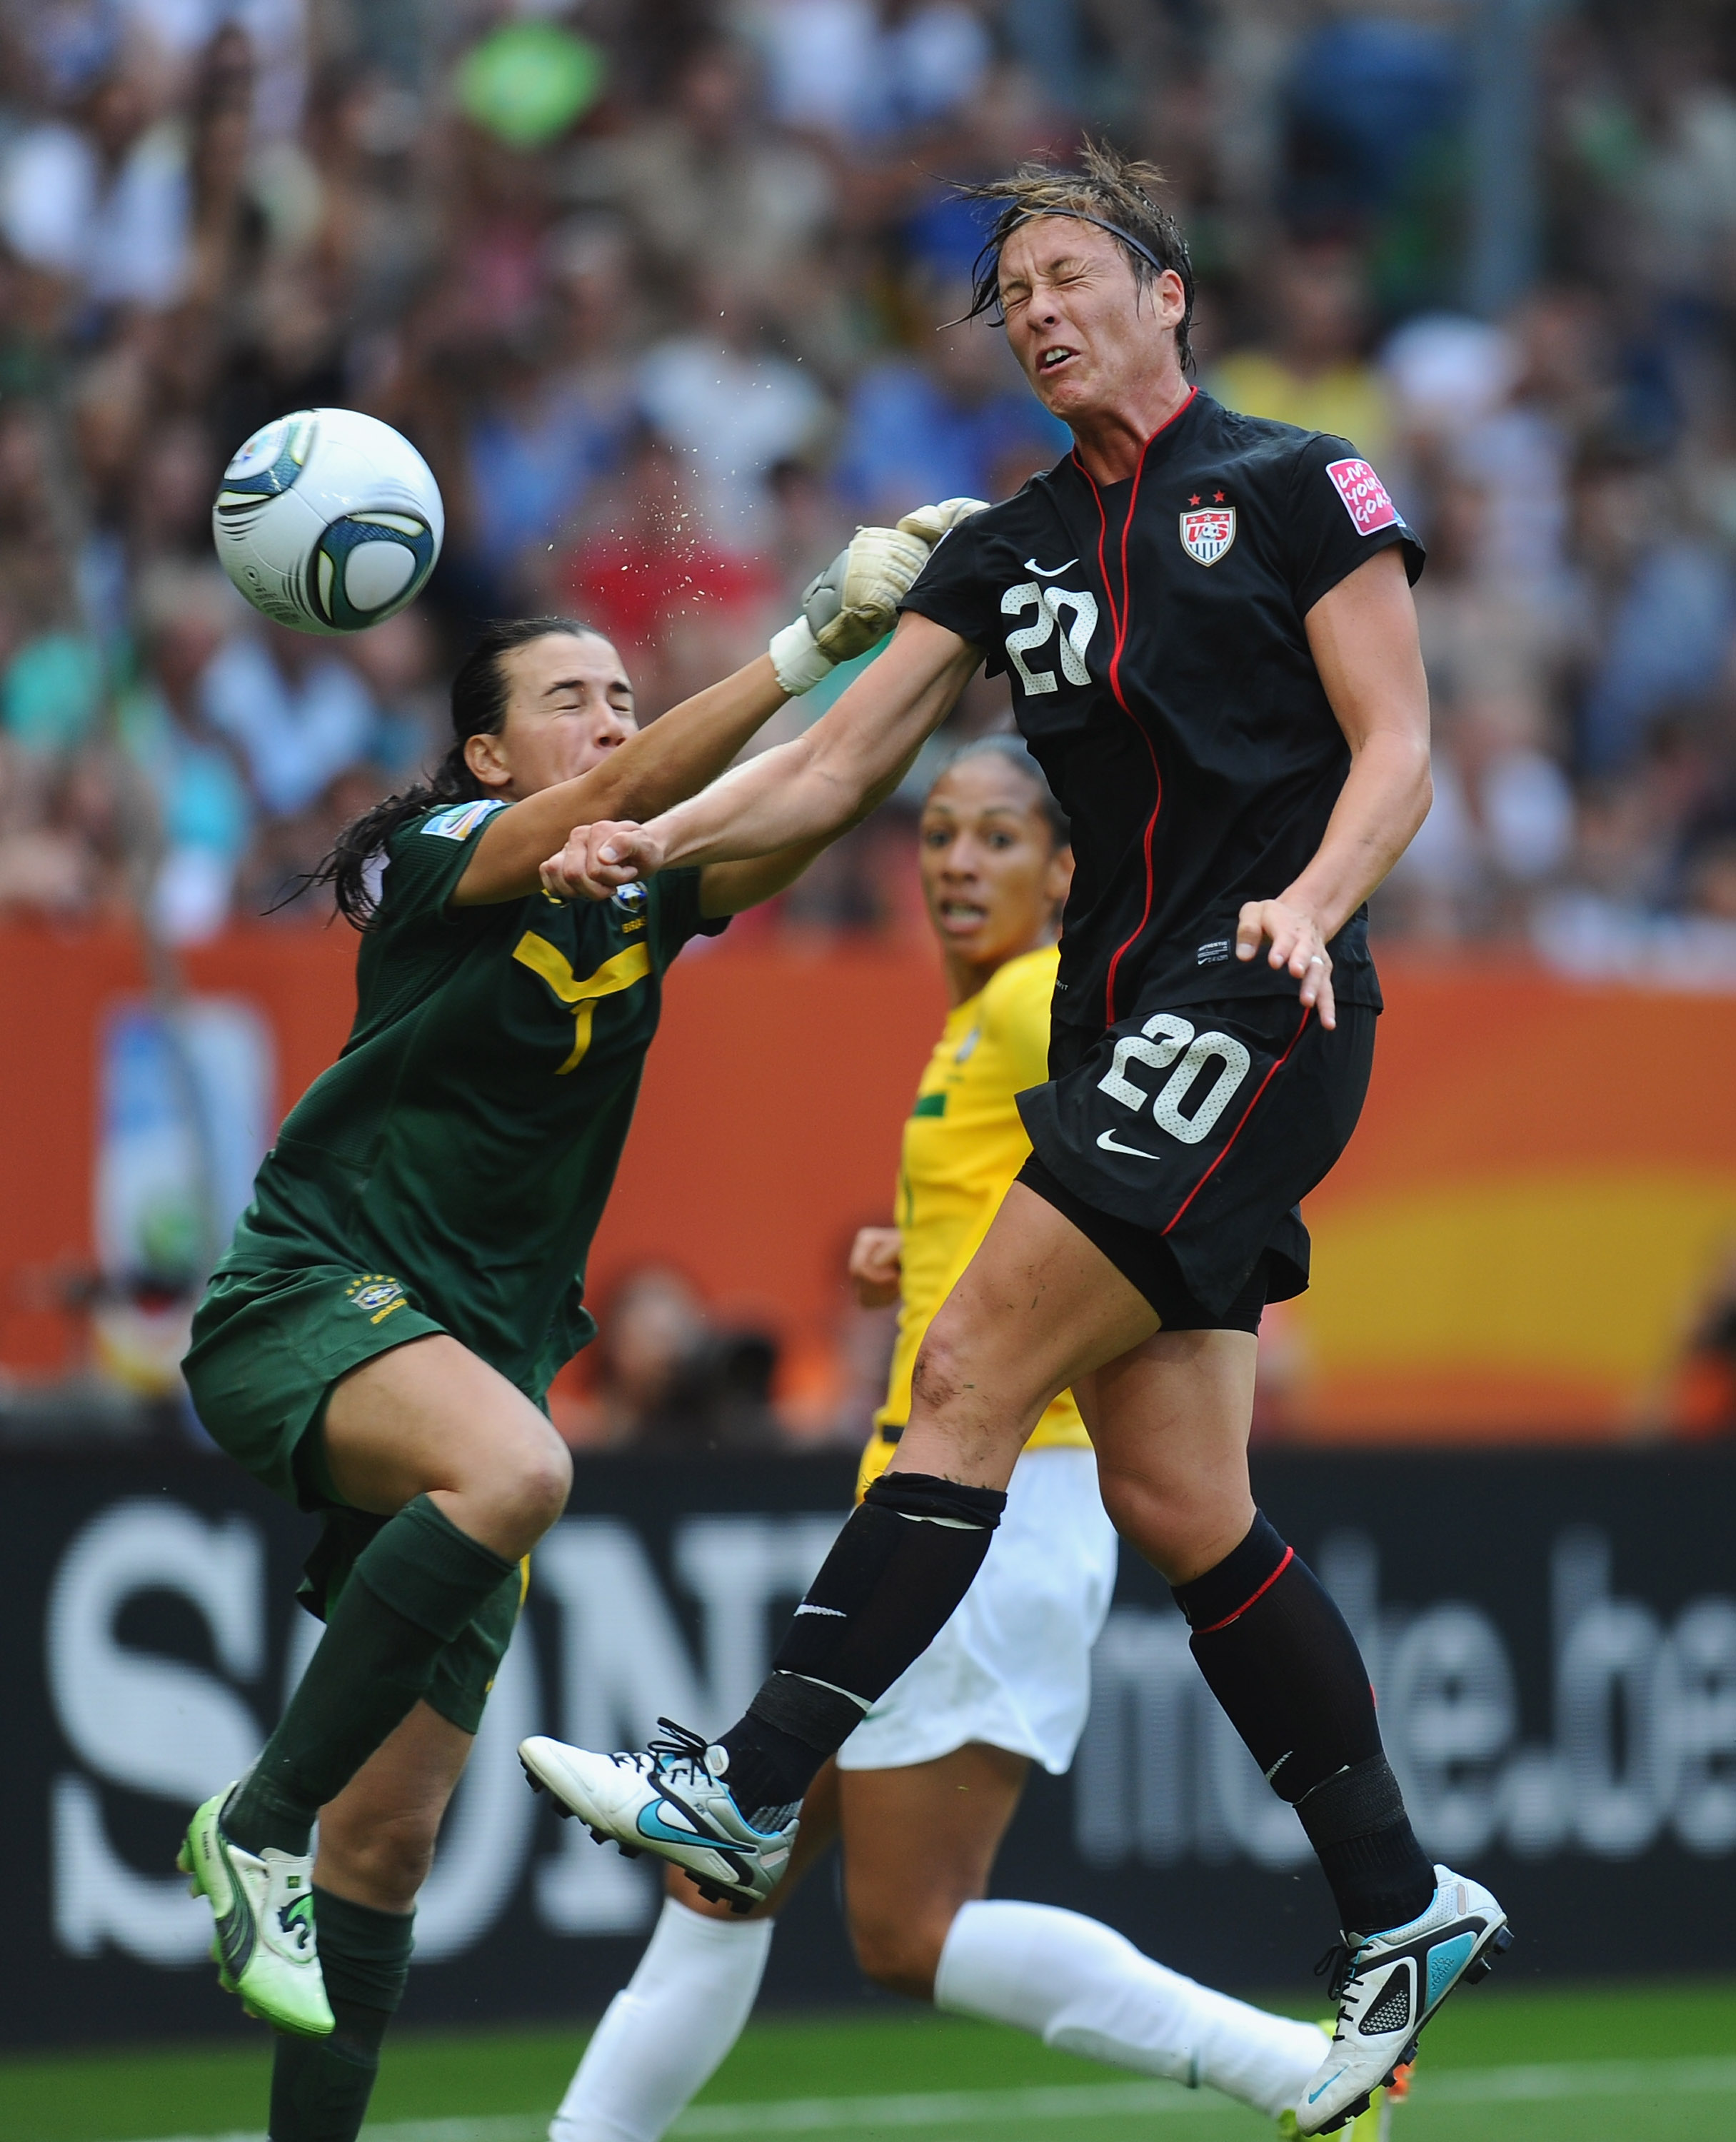 DRESDEN, GERMANY - JULY 10:  Abby Wambach of USA gets above Andreia of Brazil during the FIFA Women's World Cup 2011 Quarter Final between Brazil and USA at the Rudolf Harbig Stadium  on July 10, 2011 in Dresden, Germany.  (Photo by Mike Hewitt - FIFA/FIFA via Getty Images)